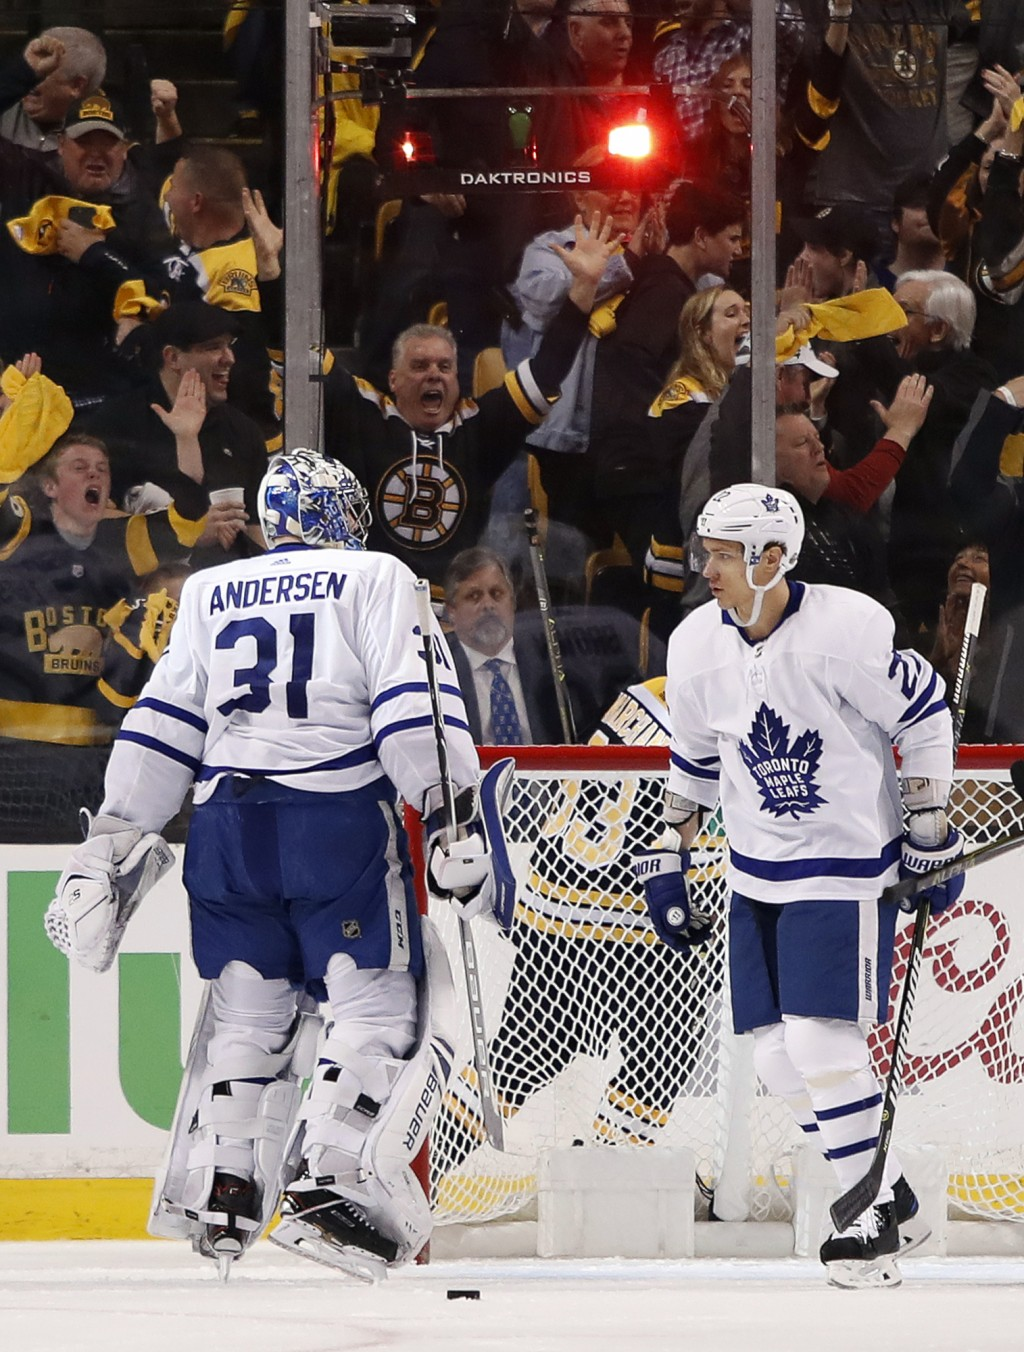 Boston Bruins fans cheer behind Toronto Maple Leafs goaltender Frederik Andersen (31) and Nikita Zaitsev after the Boston Bruins scored during the fir